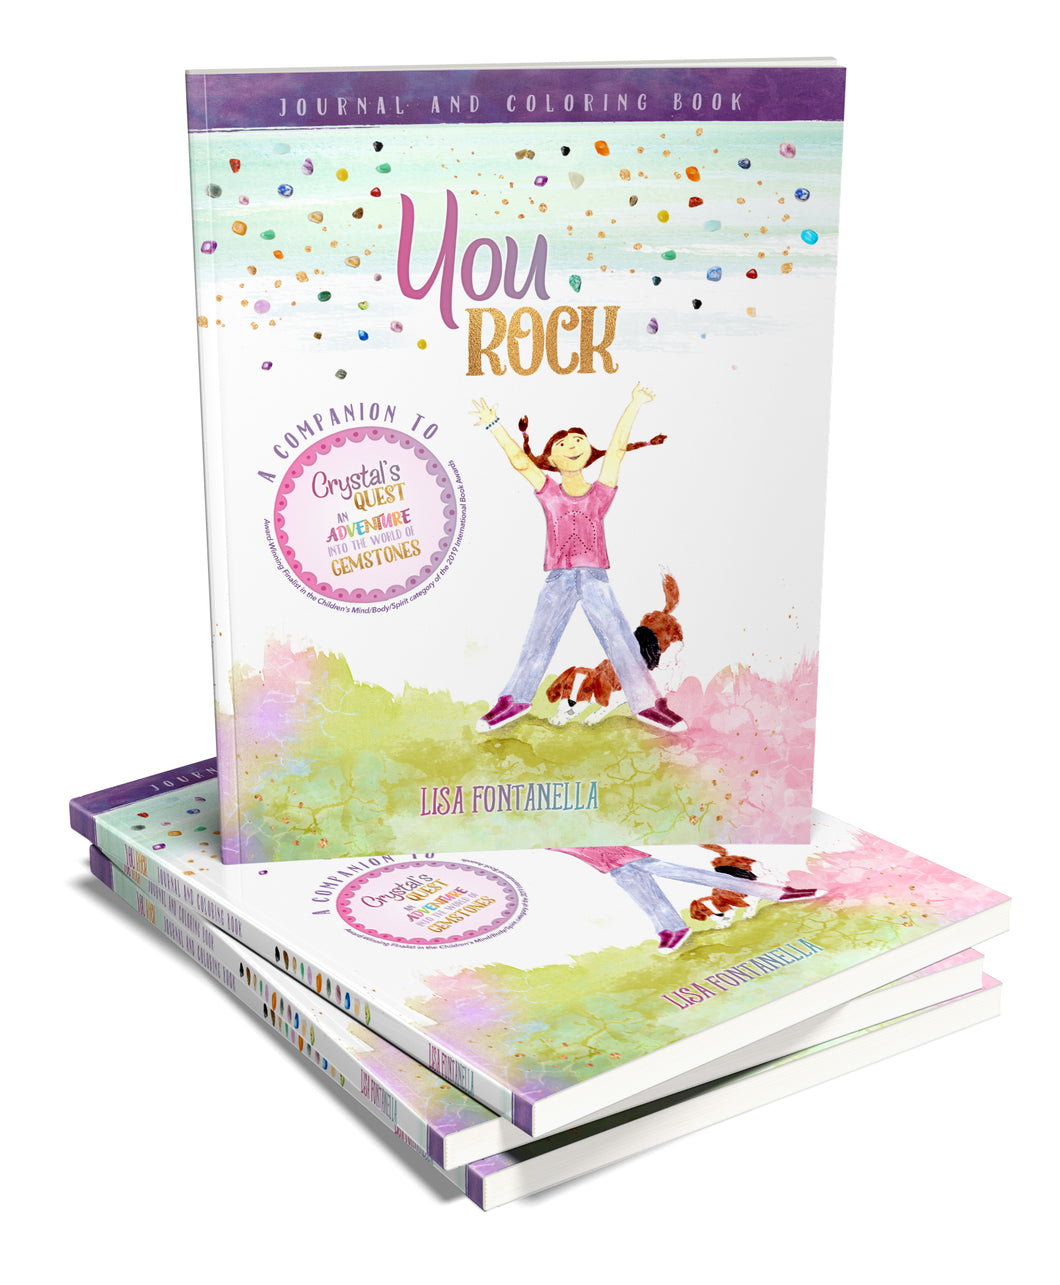 You ROCK! Journal and Coloring Book